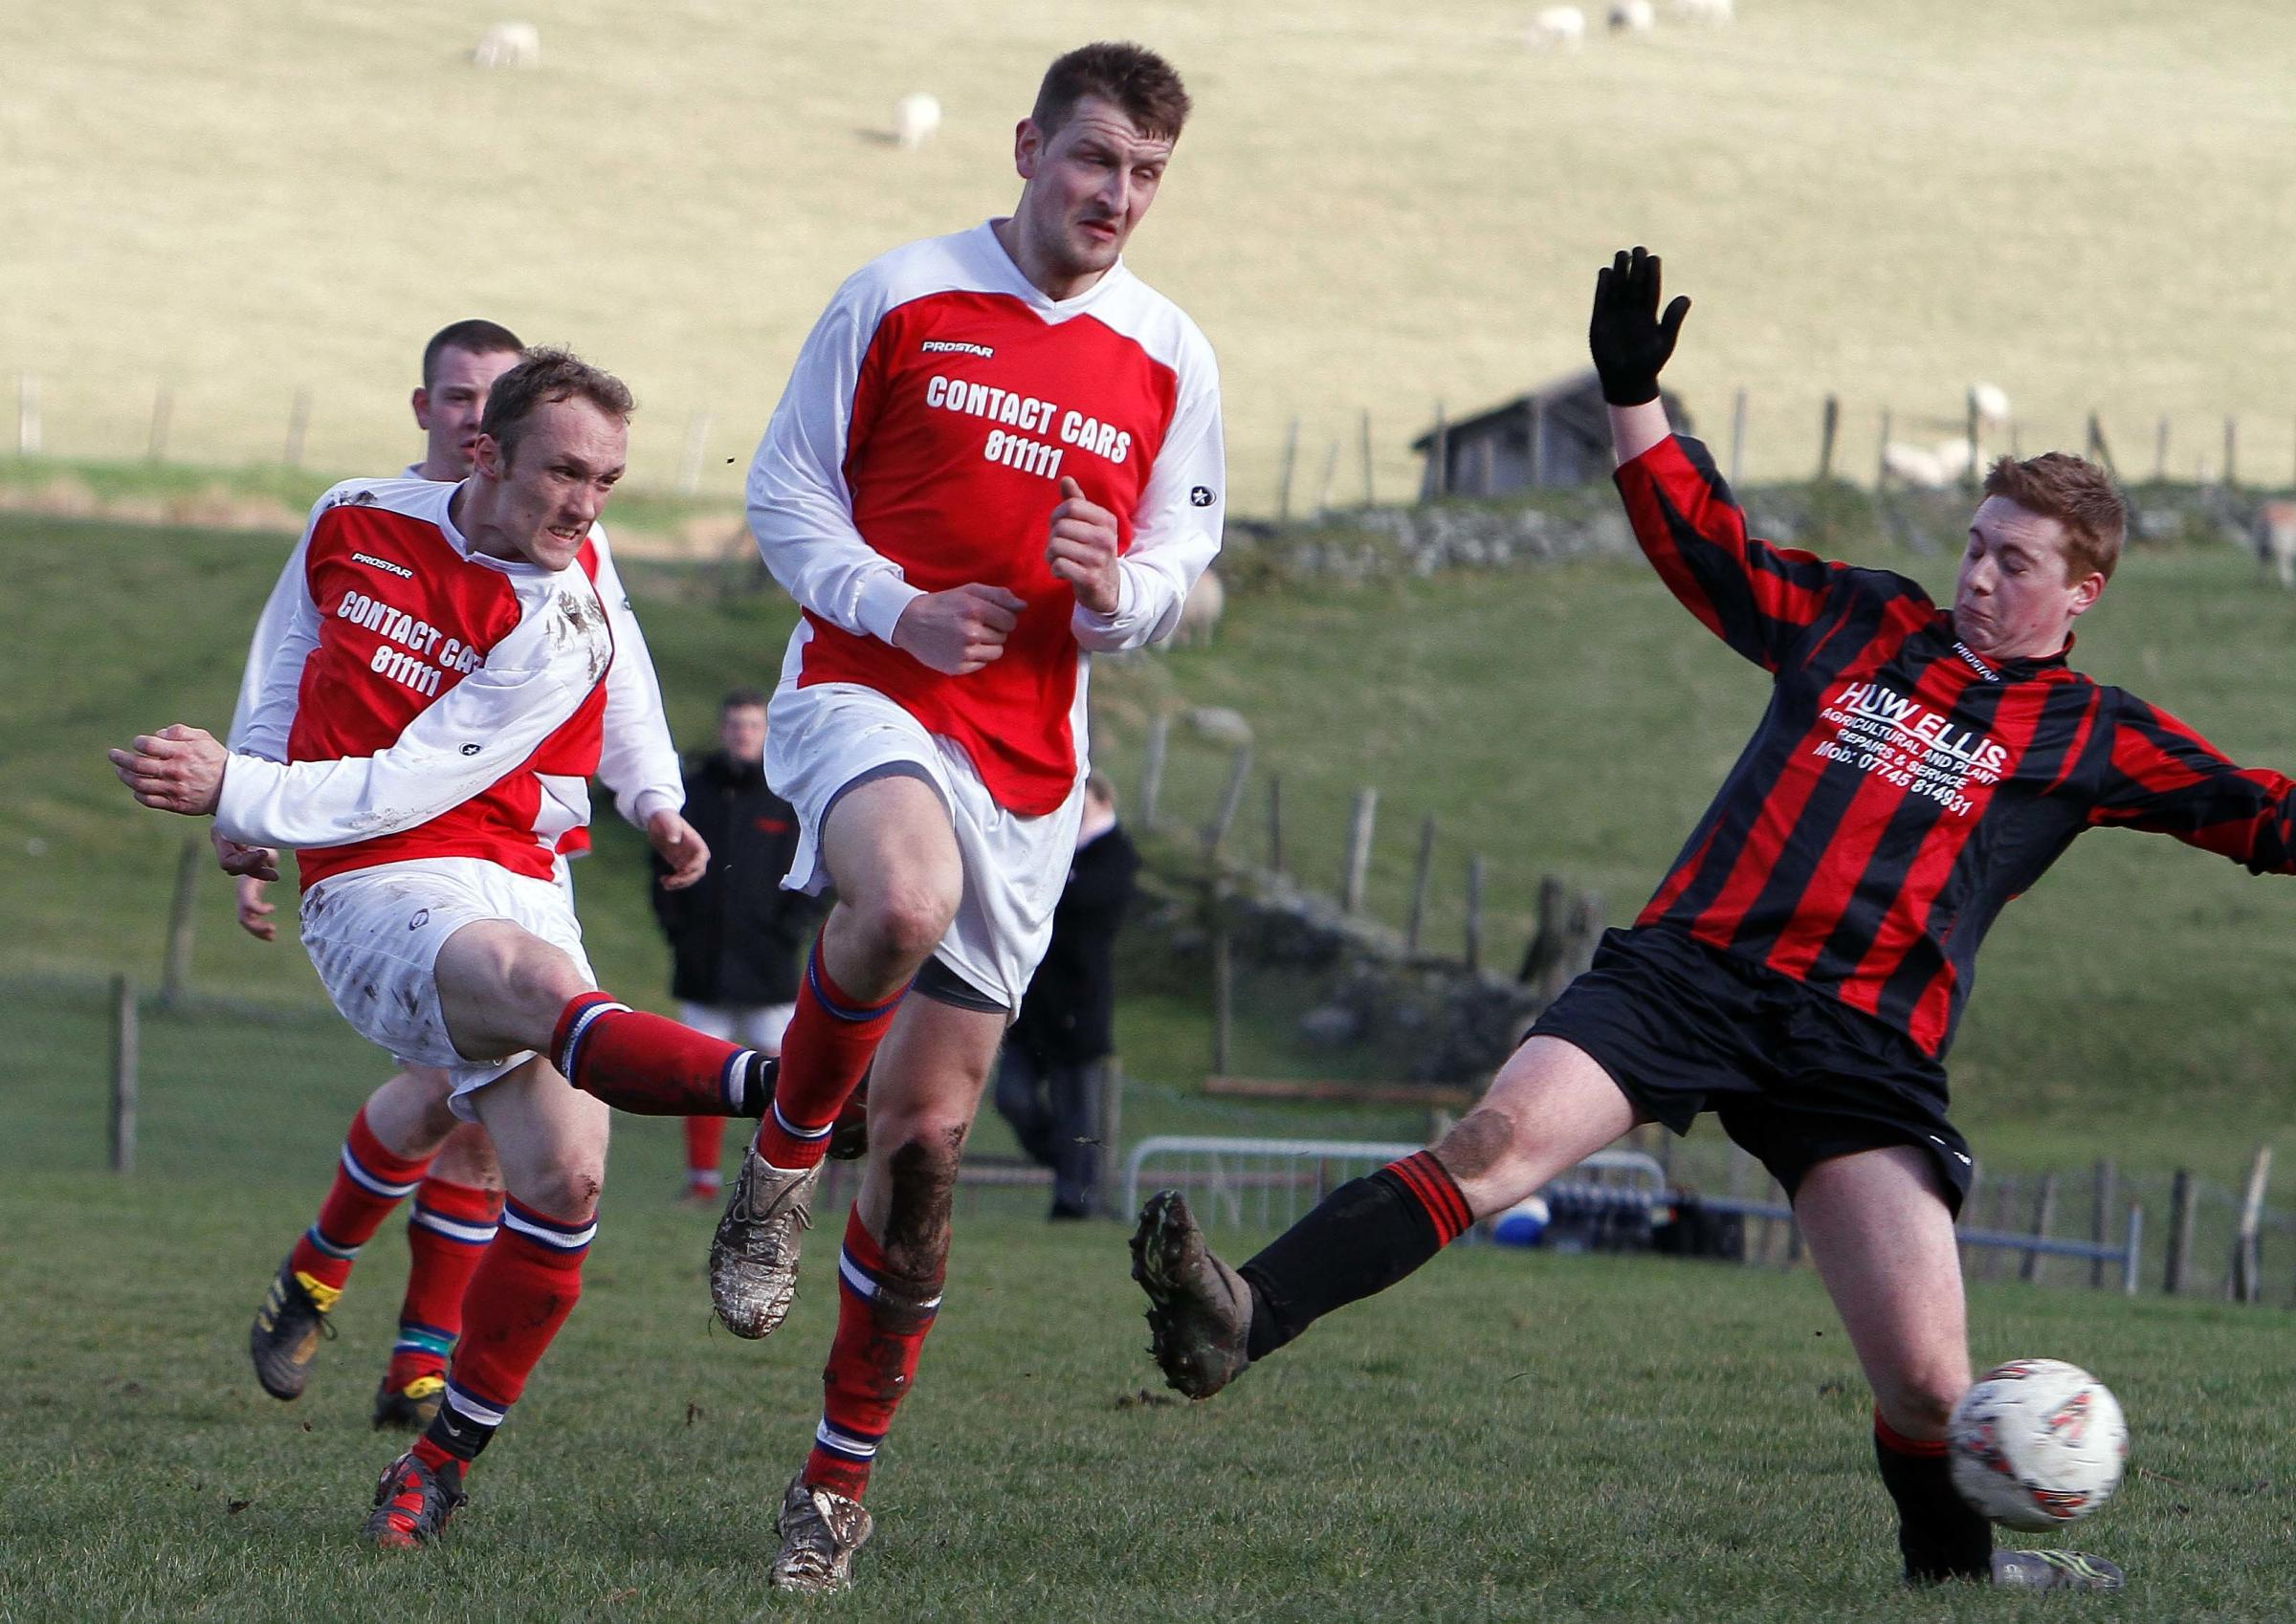 Just two matches survived the weather in the Vale of Clwyd and Conwy League this weekend